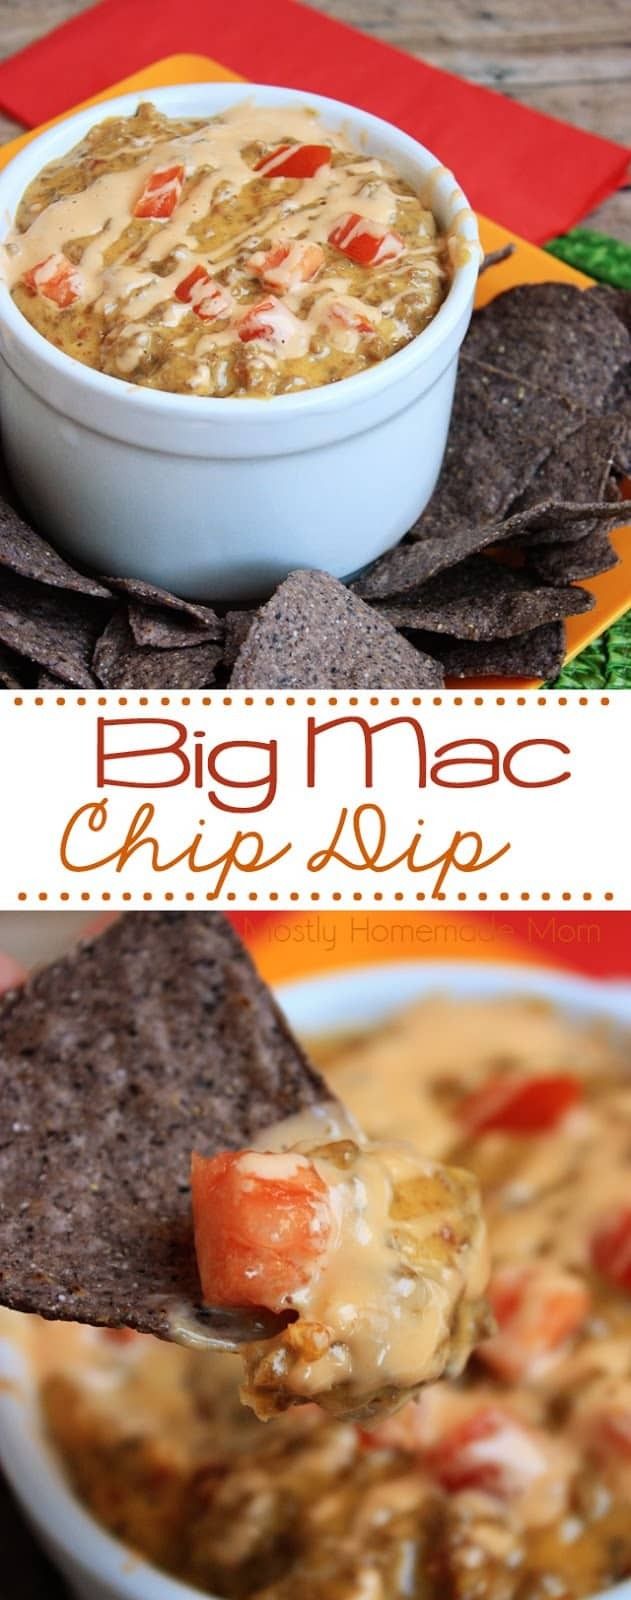 Big Mac Chip Dip - This dip tastes just like that famous cheeseburger - even with special sauce! This is a perfect recipe for any party you have coming up! #bigmac #chipdip #recipe